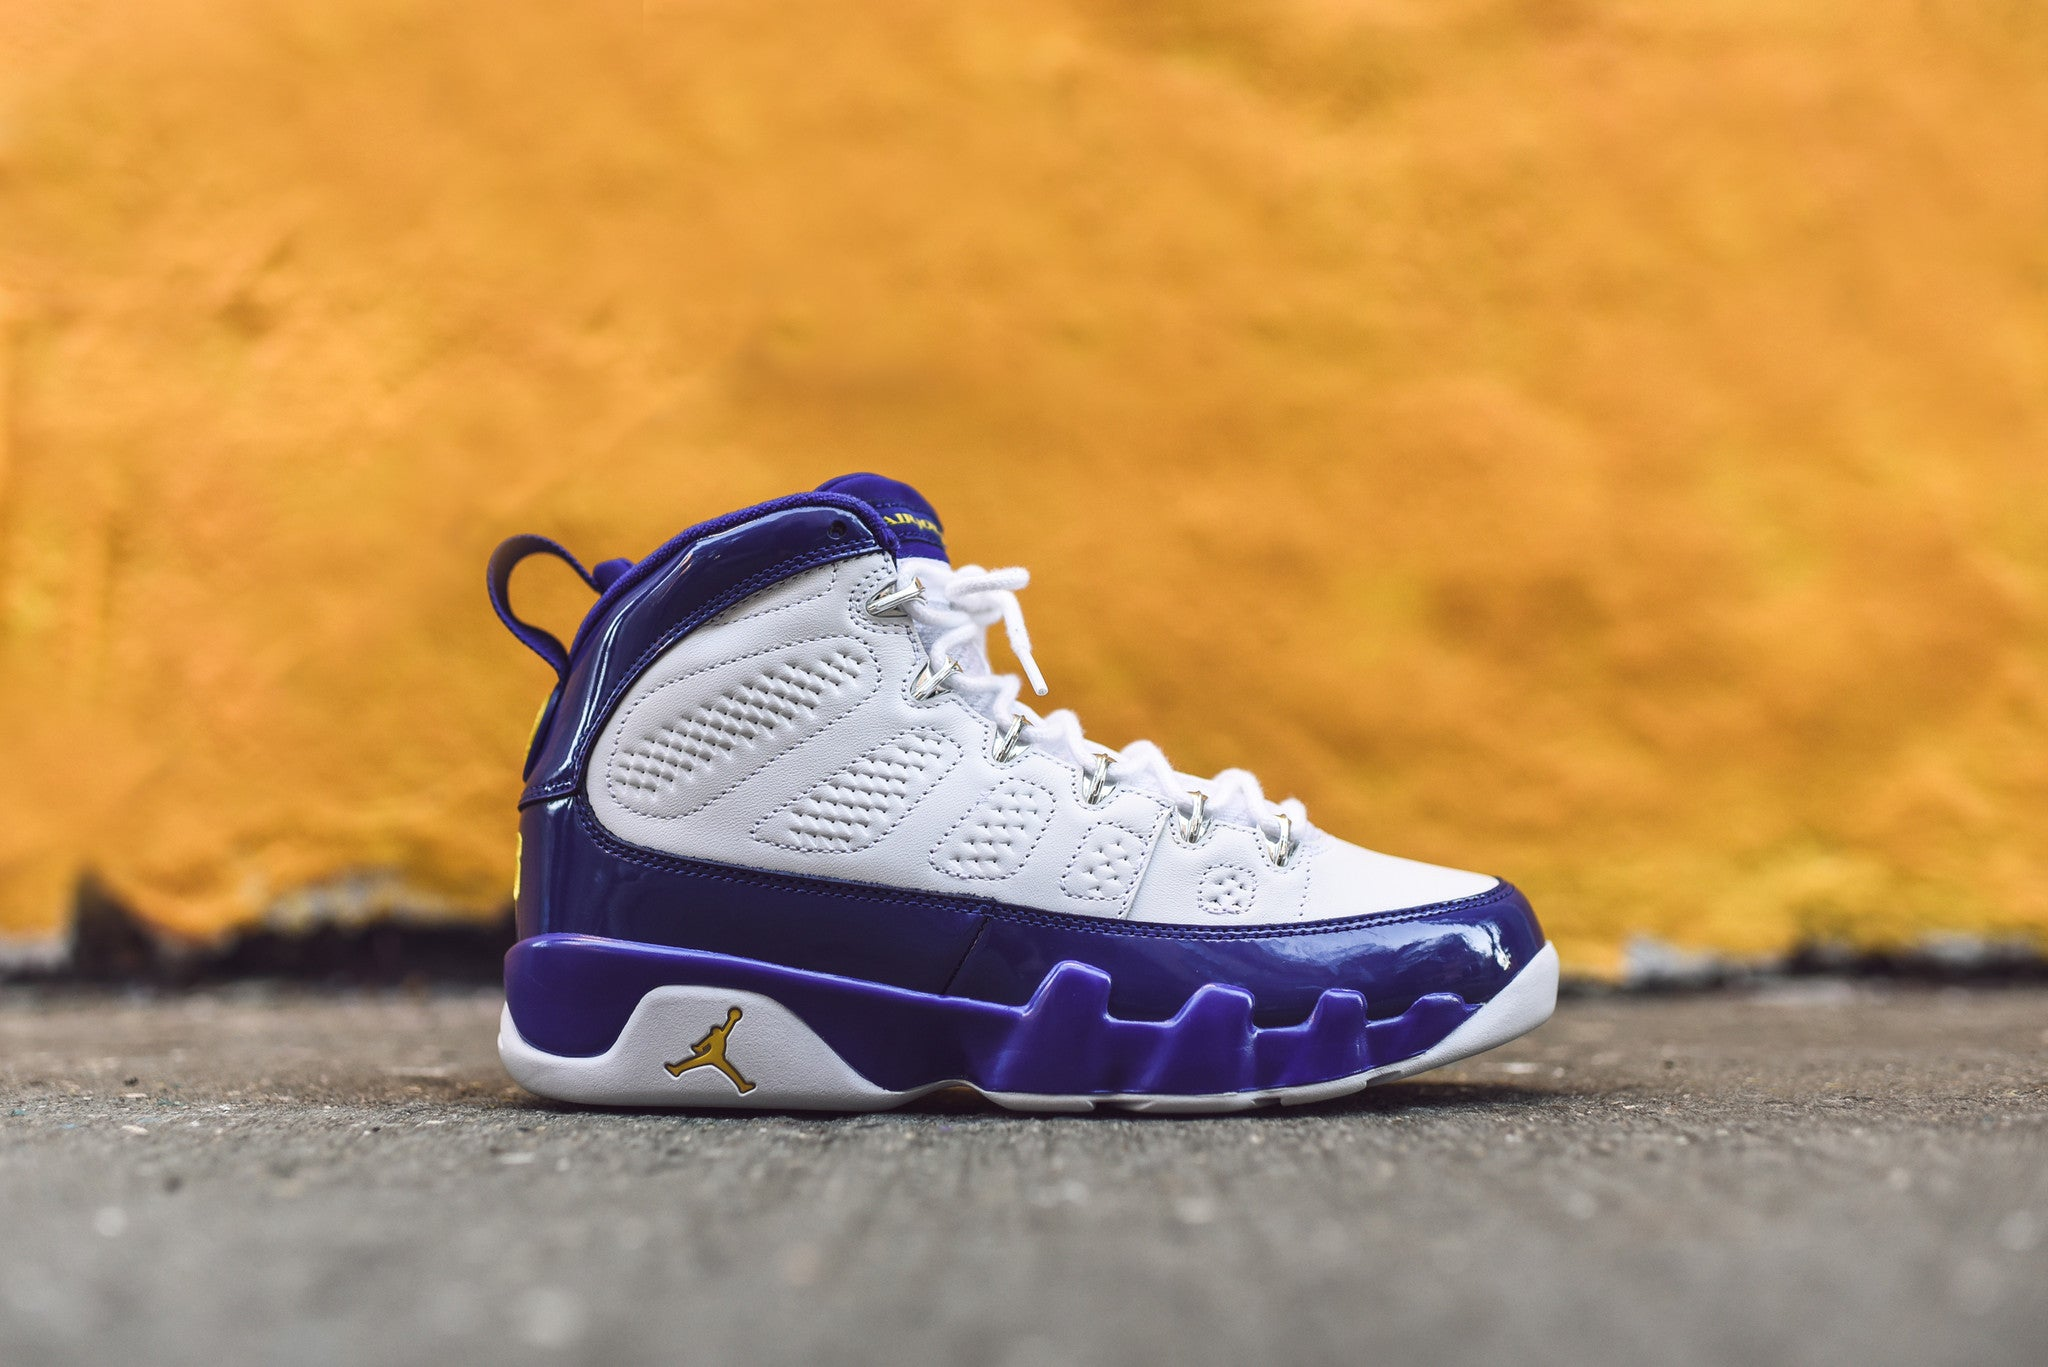 Nike Air Jordan 9 Kobe Bryant PE - White / Tour Yellow / Concord